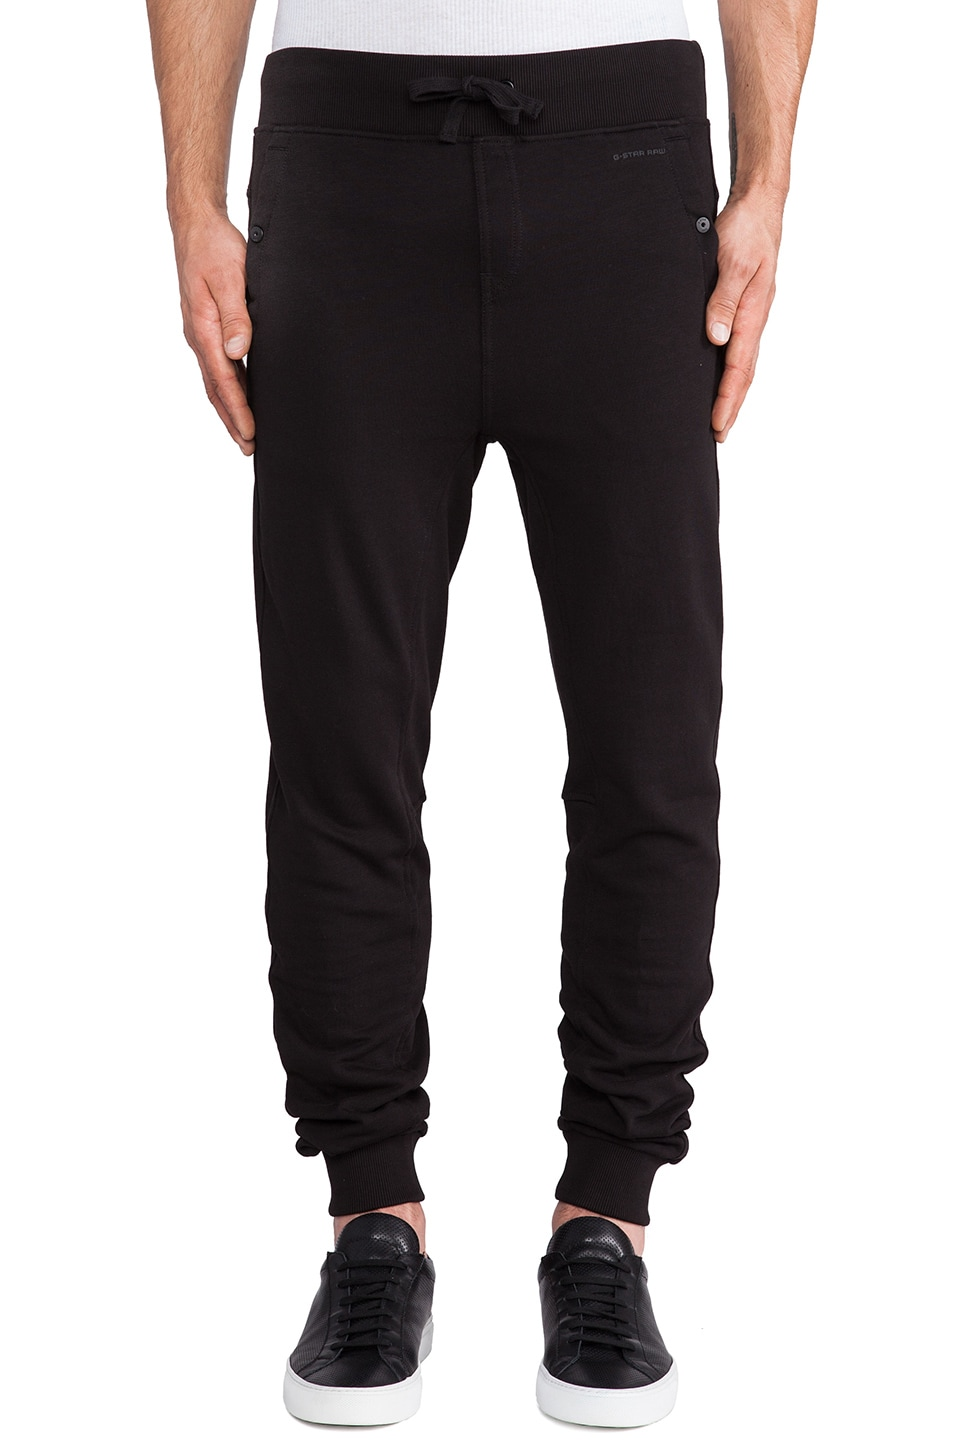 G-Star Sobeck Tapered Sweatpant in Black